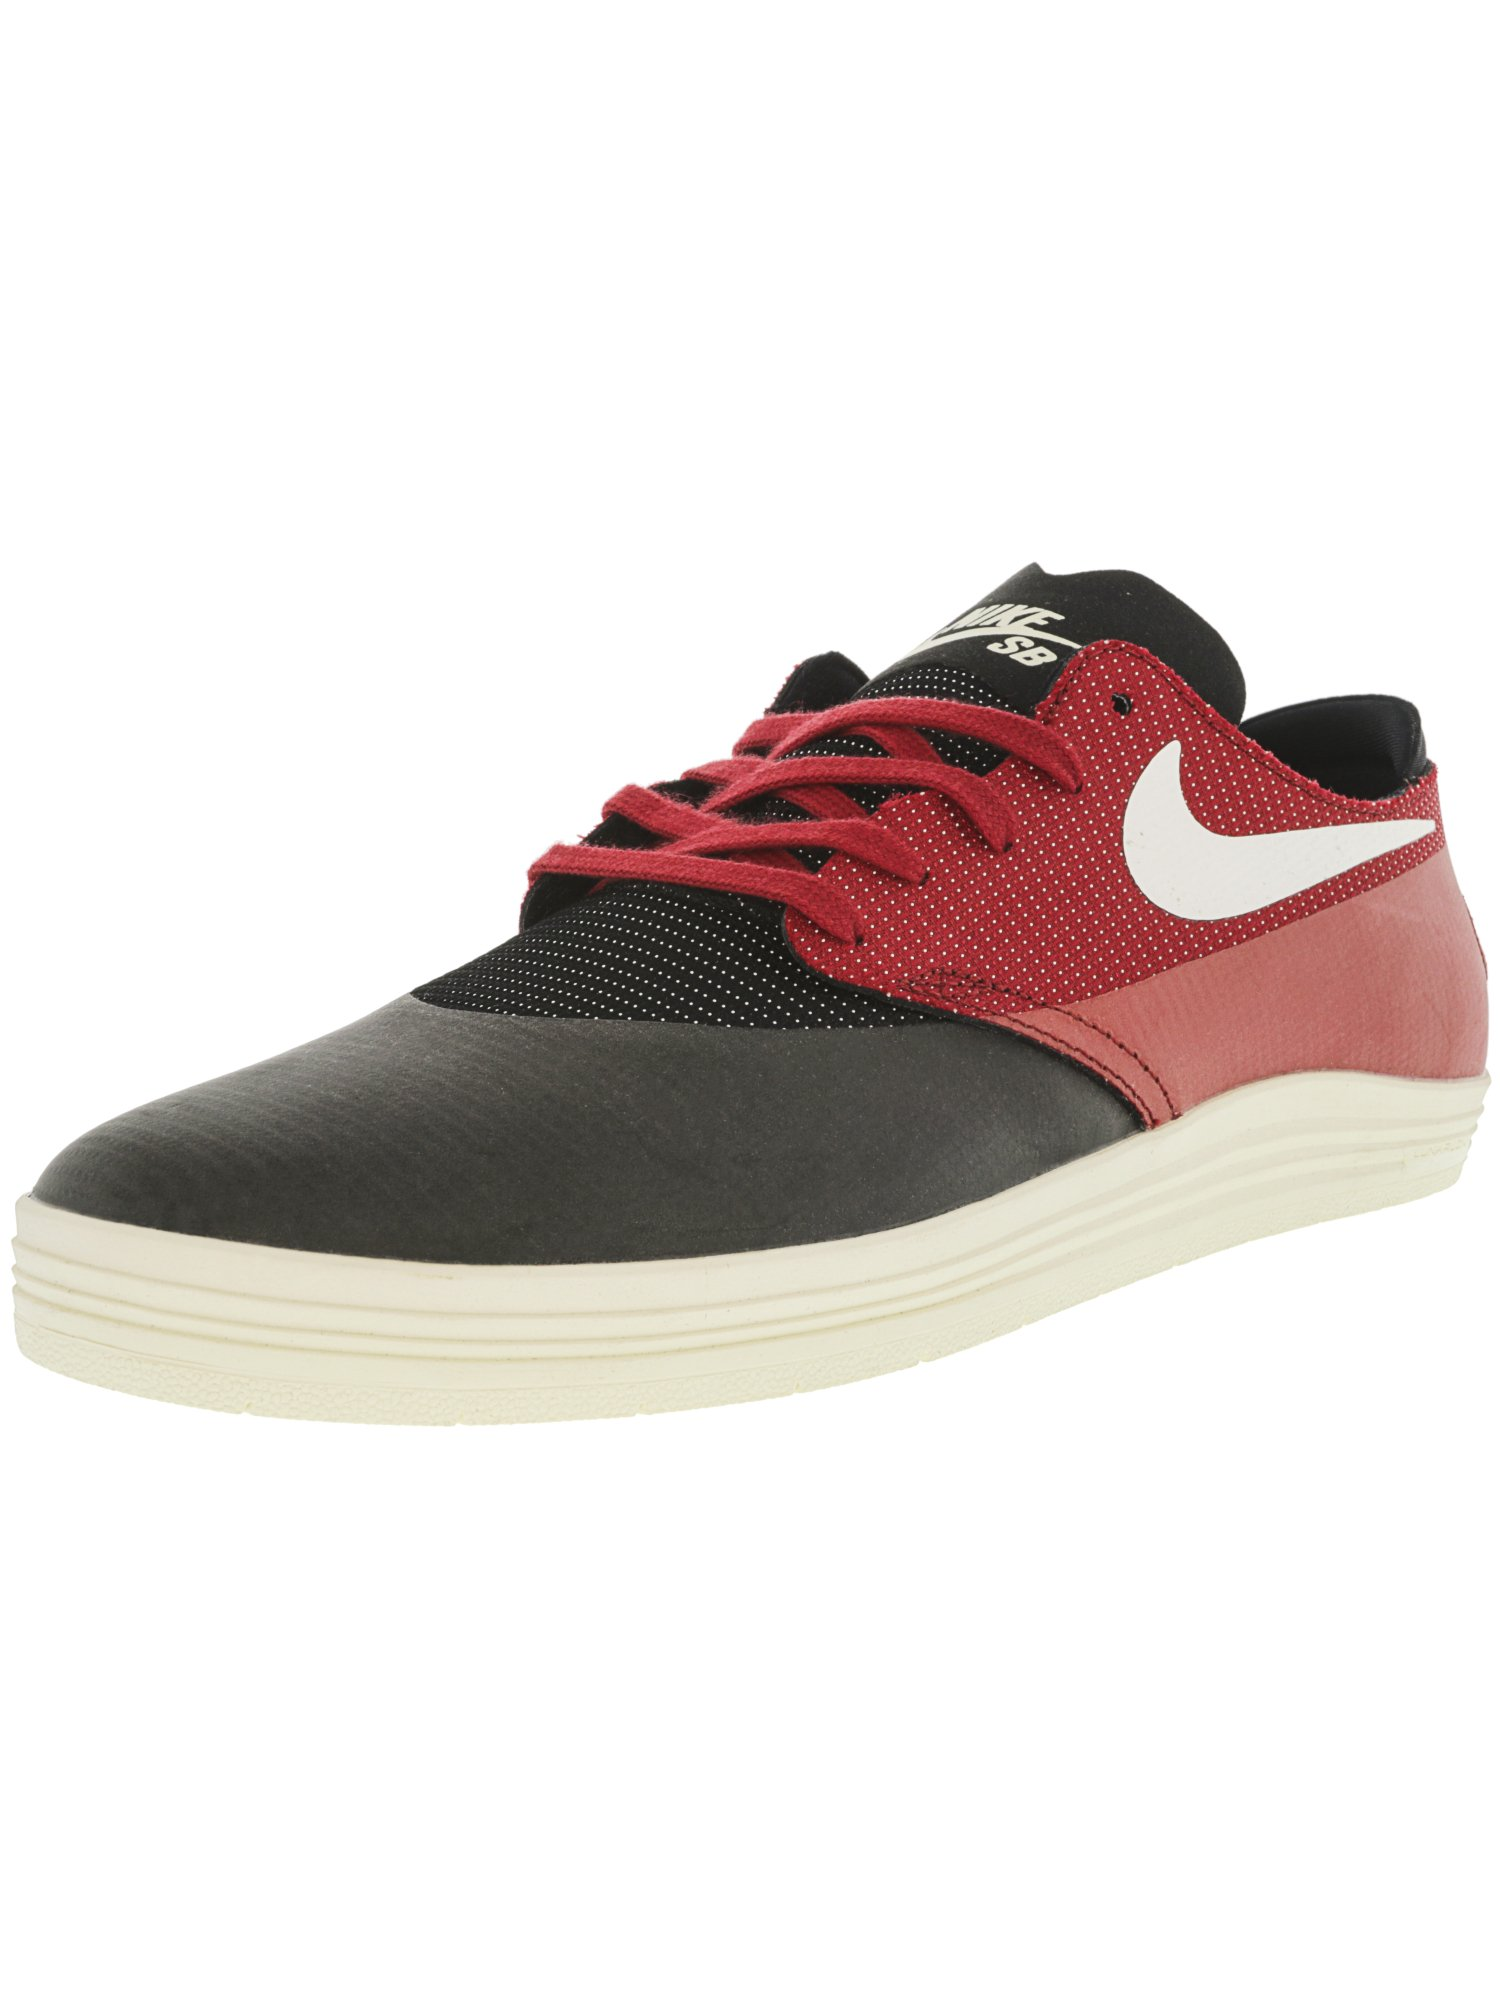 separation shoes 2c0c0 116c7 ... Nike Men s Lunar Oneshot Ankle-High Ankle-High Ankle-High Skateboarding  Shoe cd89dc ...